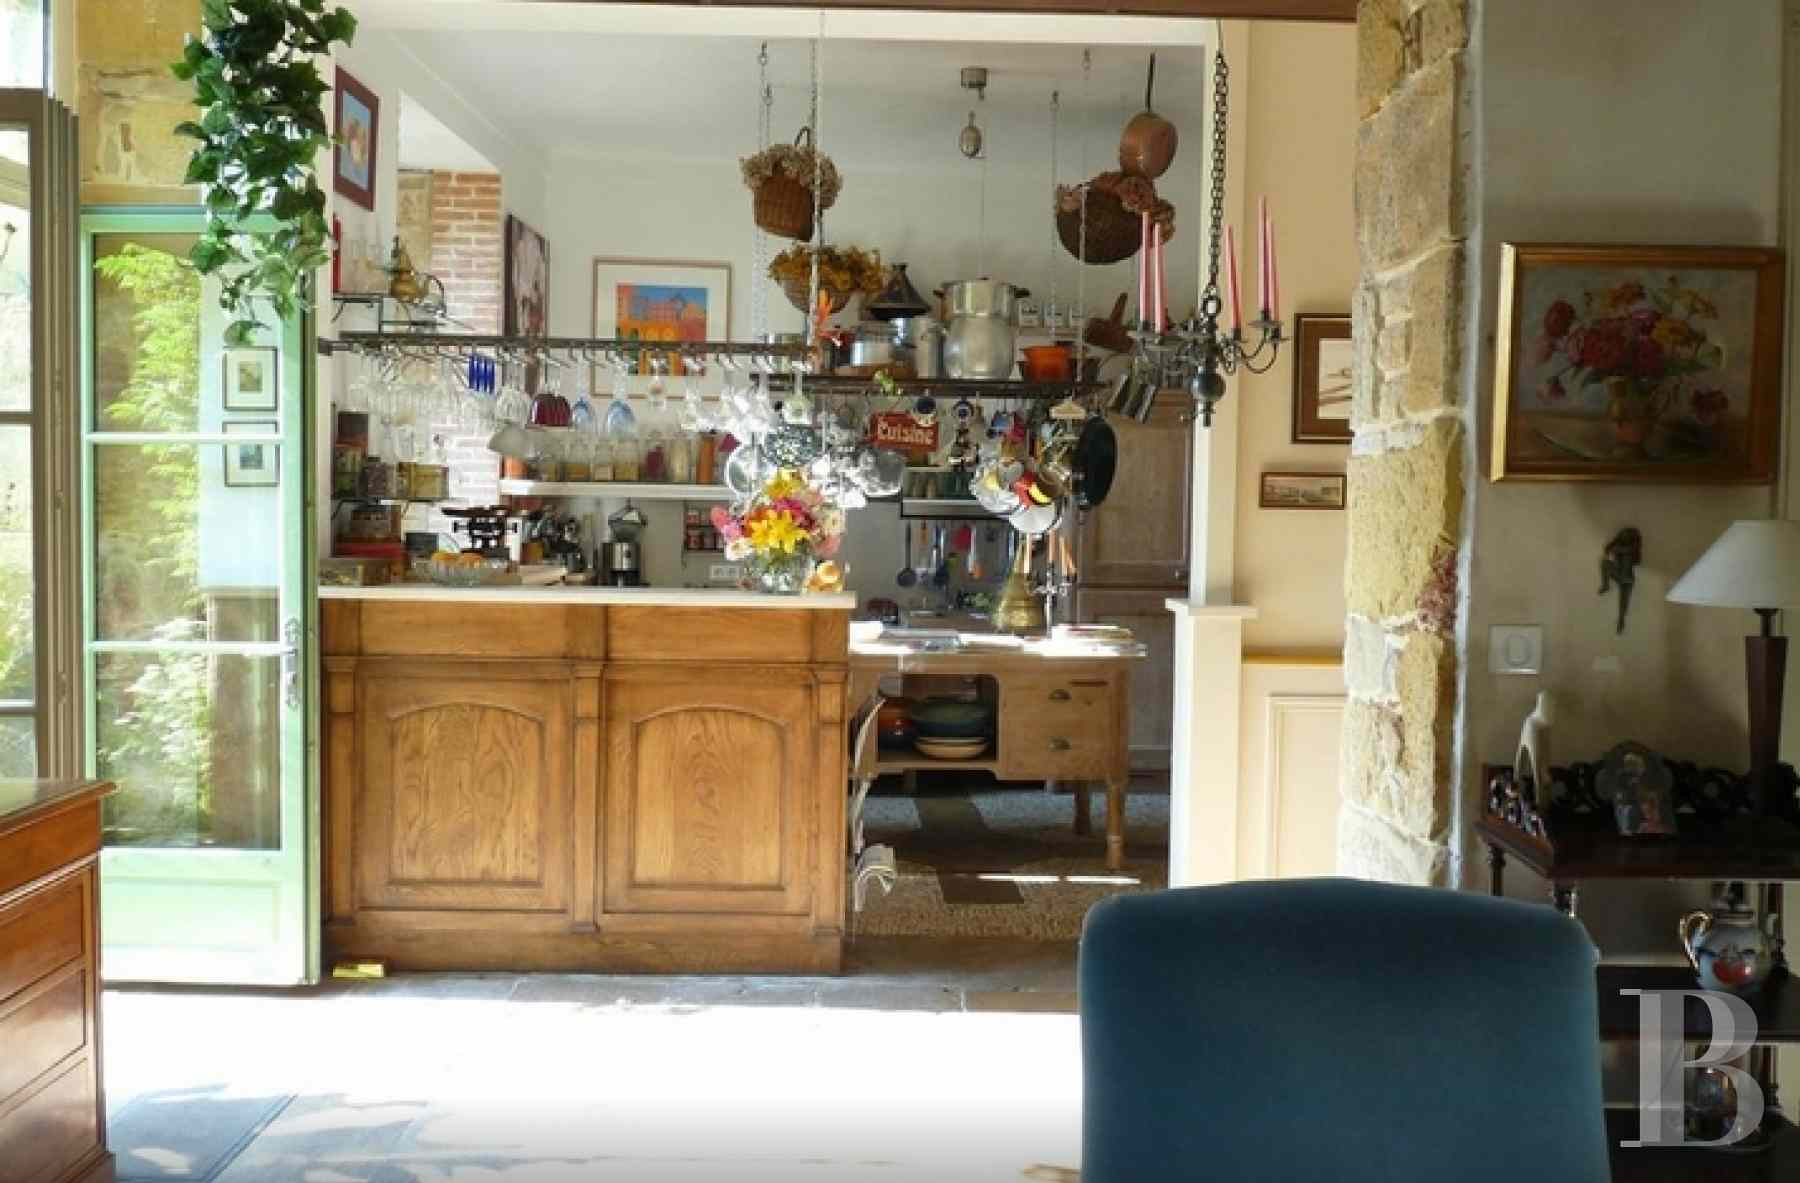 mansion houses for sale France aquitaine house 18th - 9 zoom